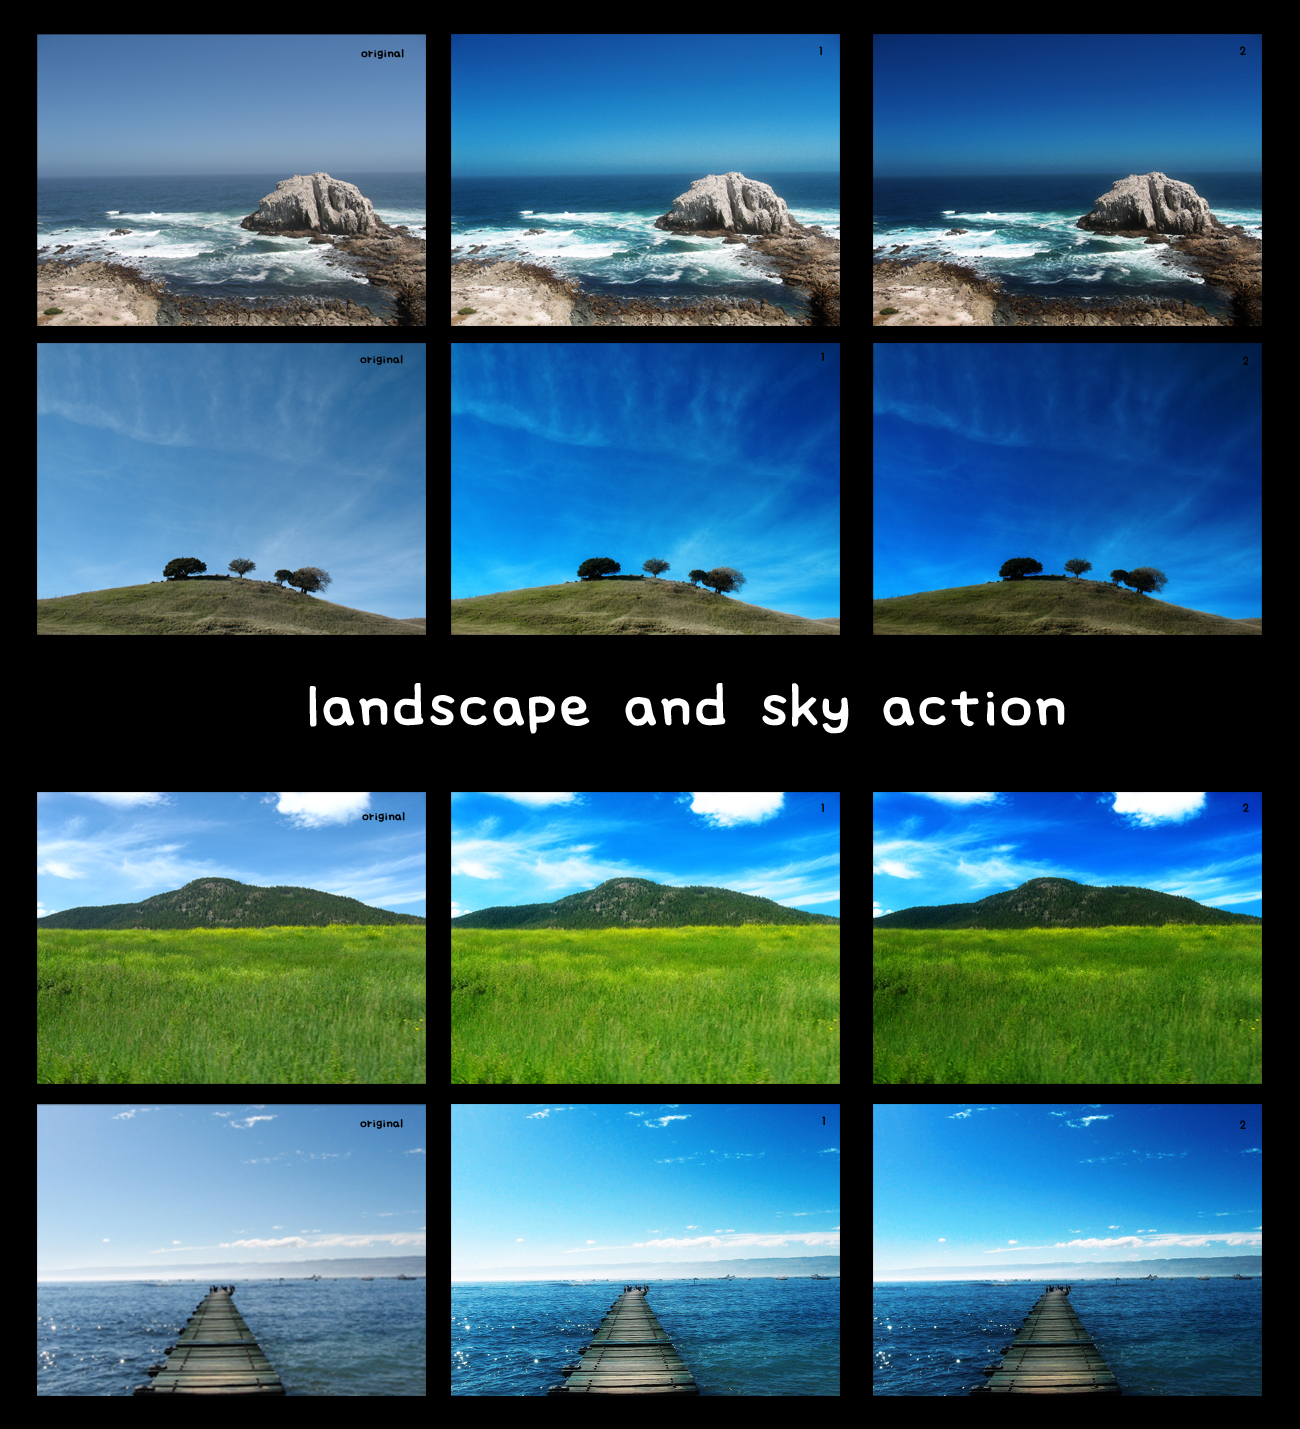 landscape and sky action